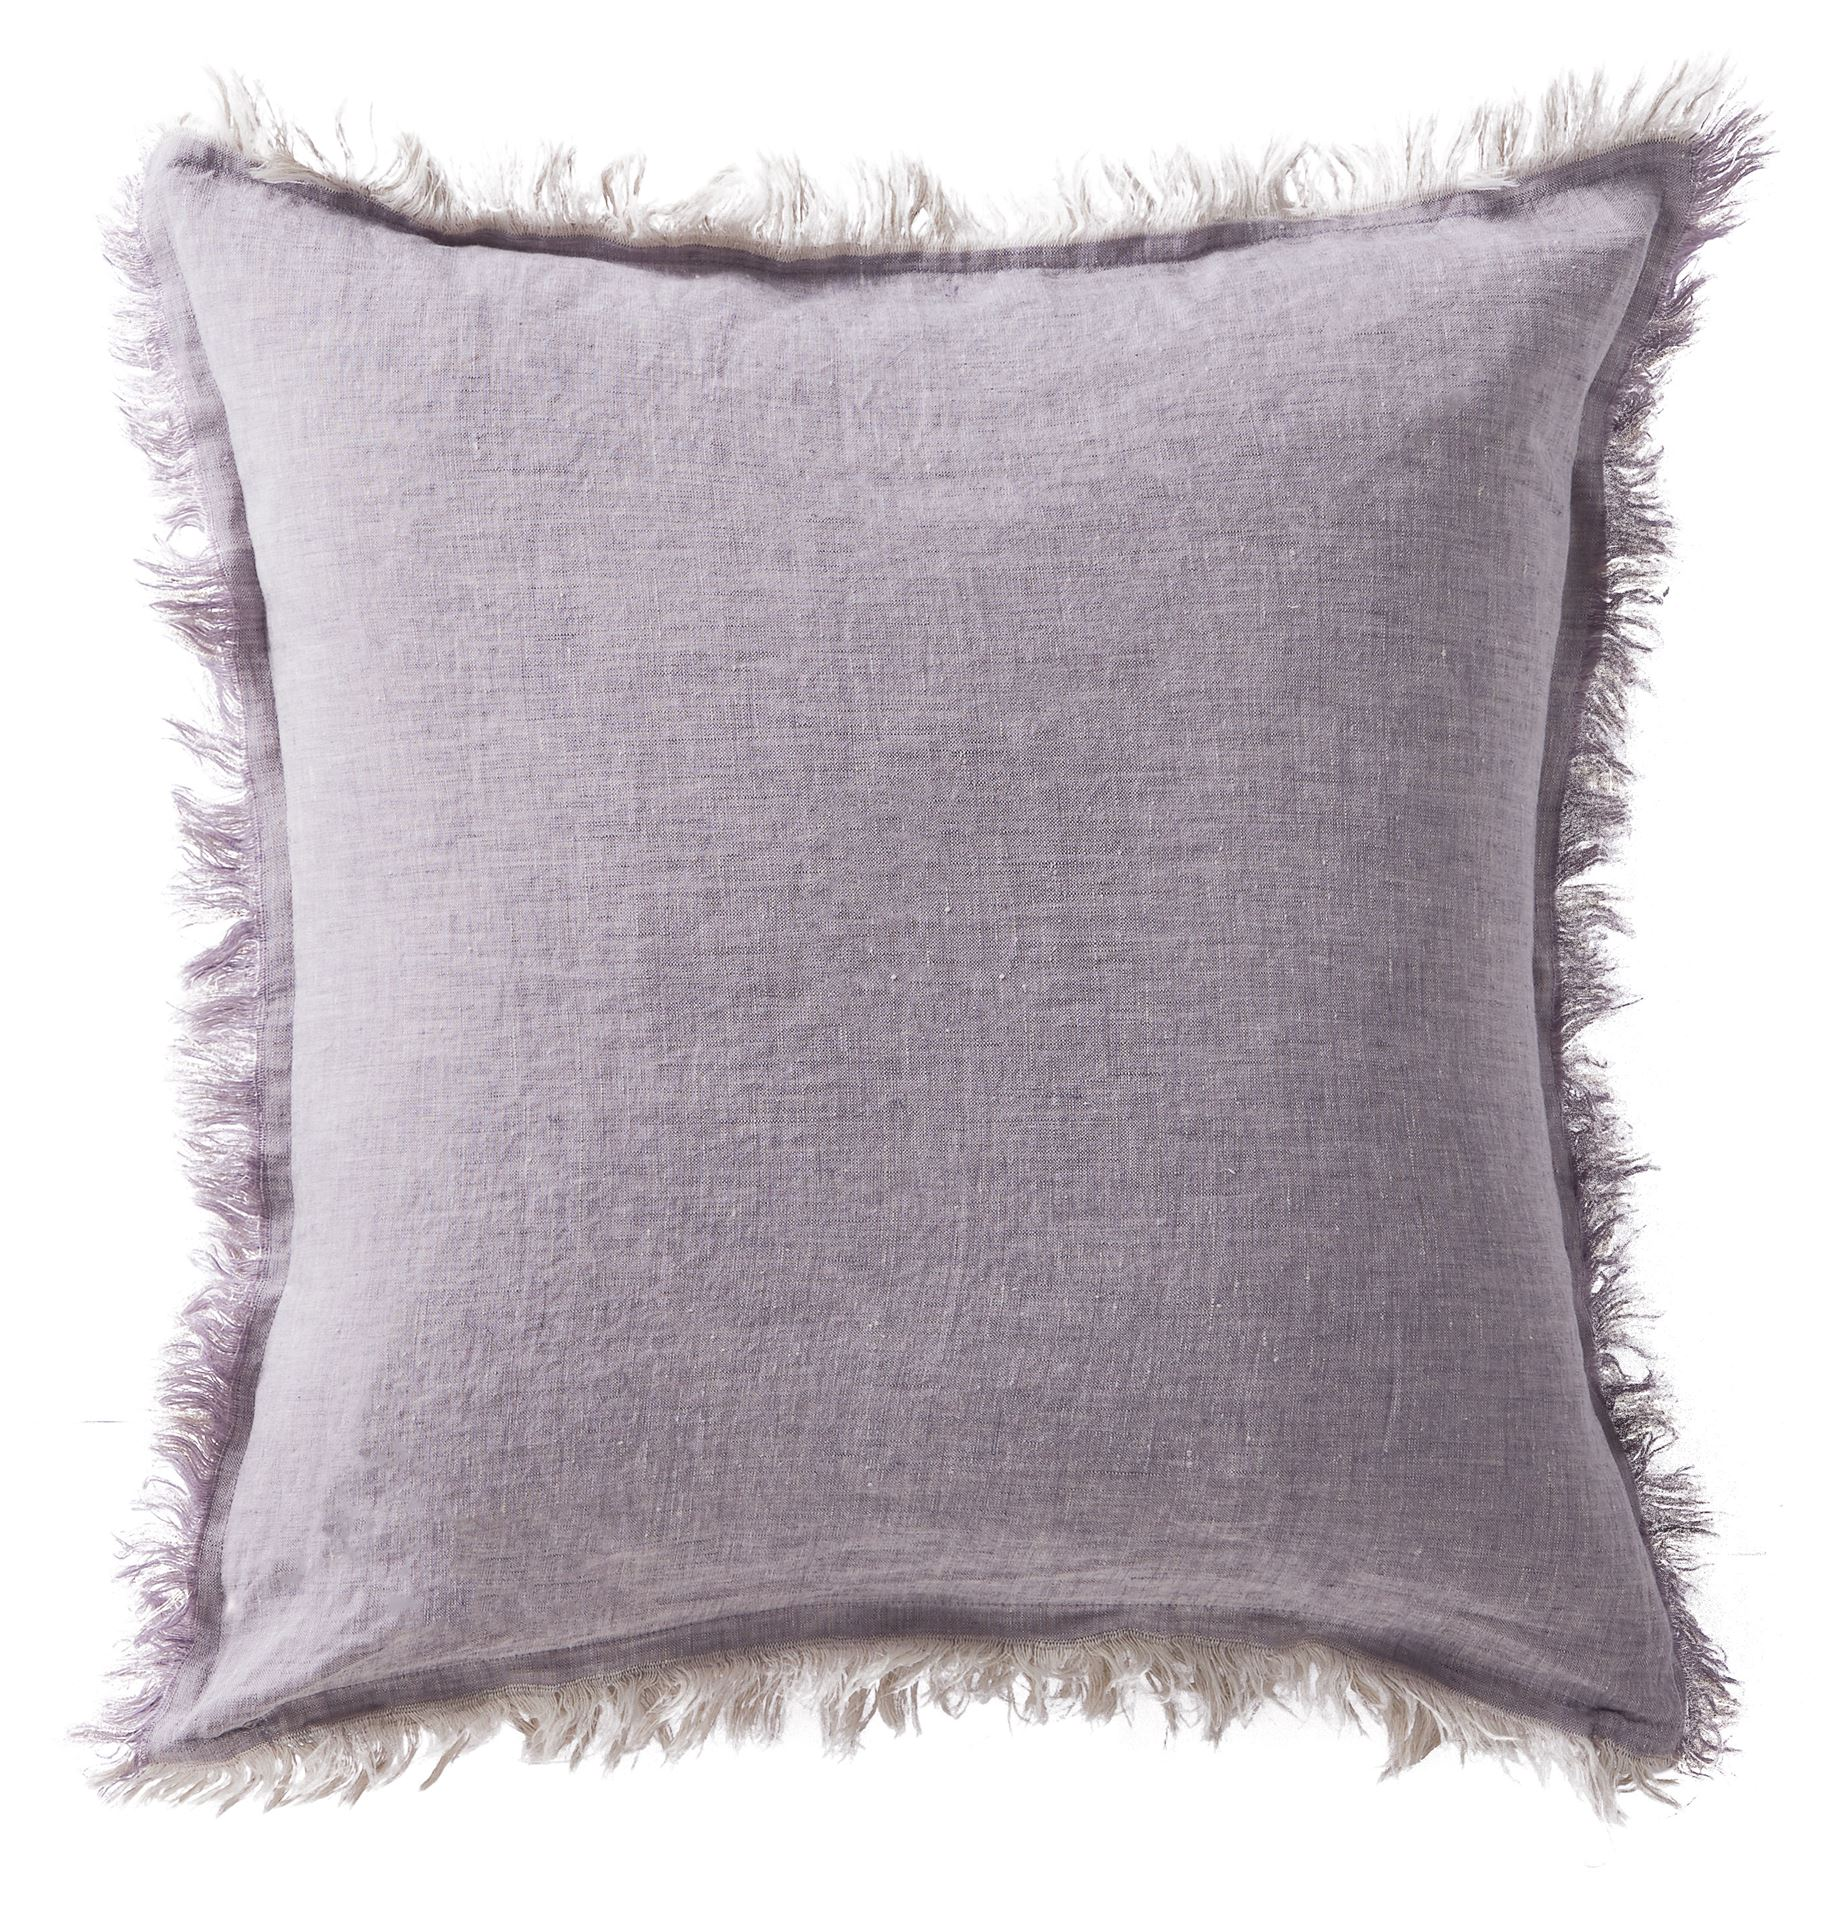 Picture of Linen Fringe Double Side Cushion - Lavender